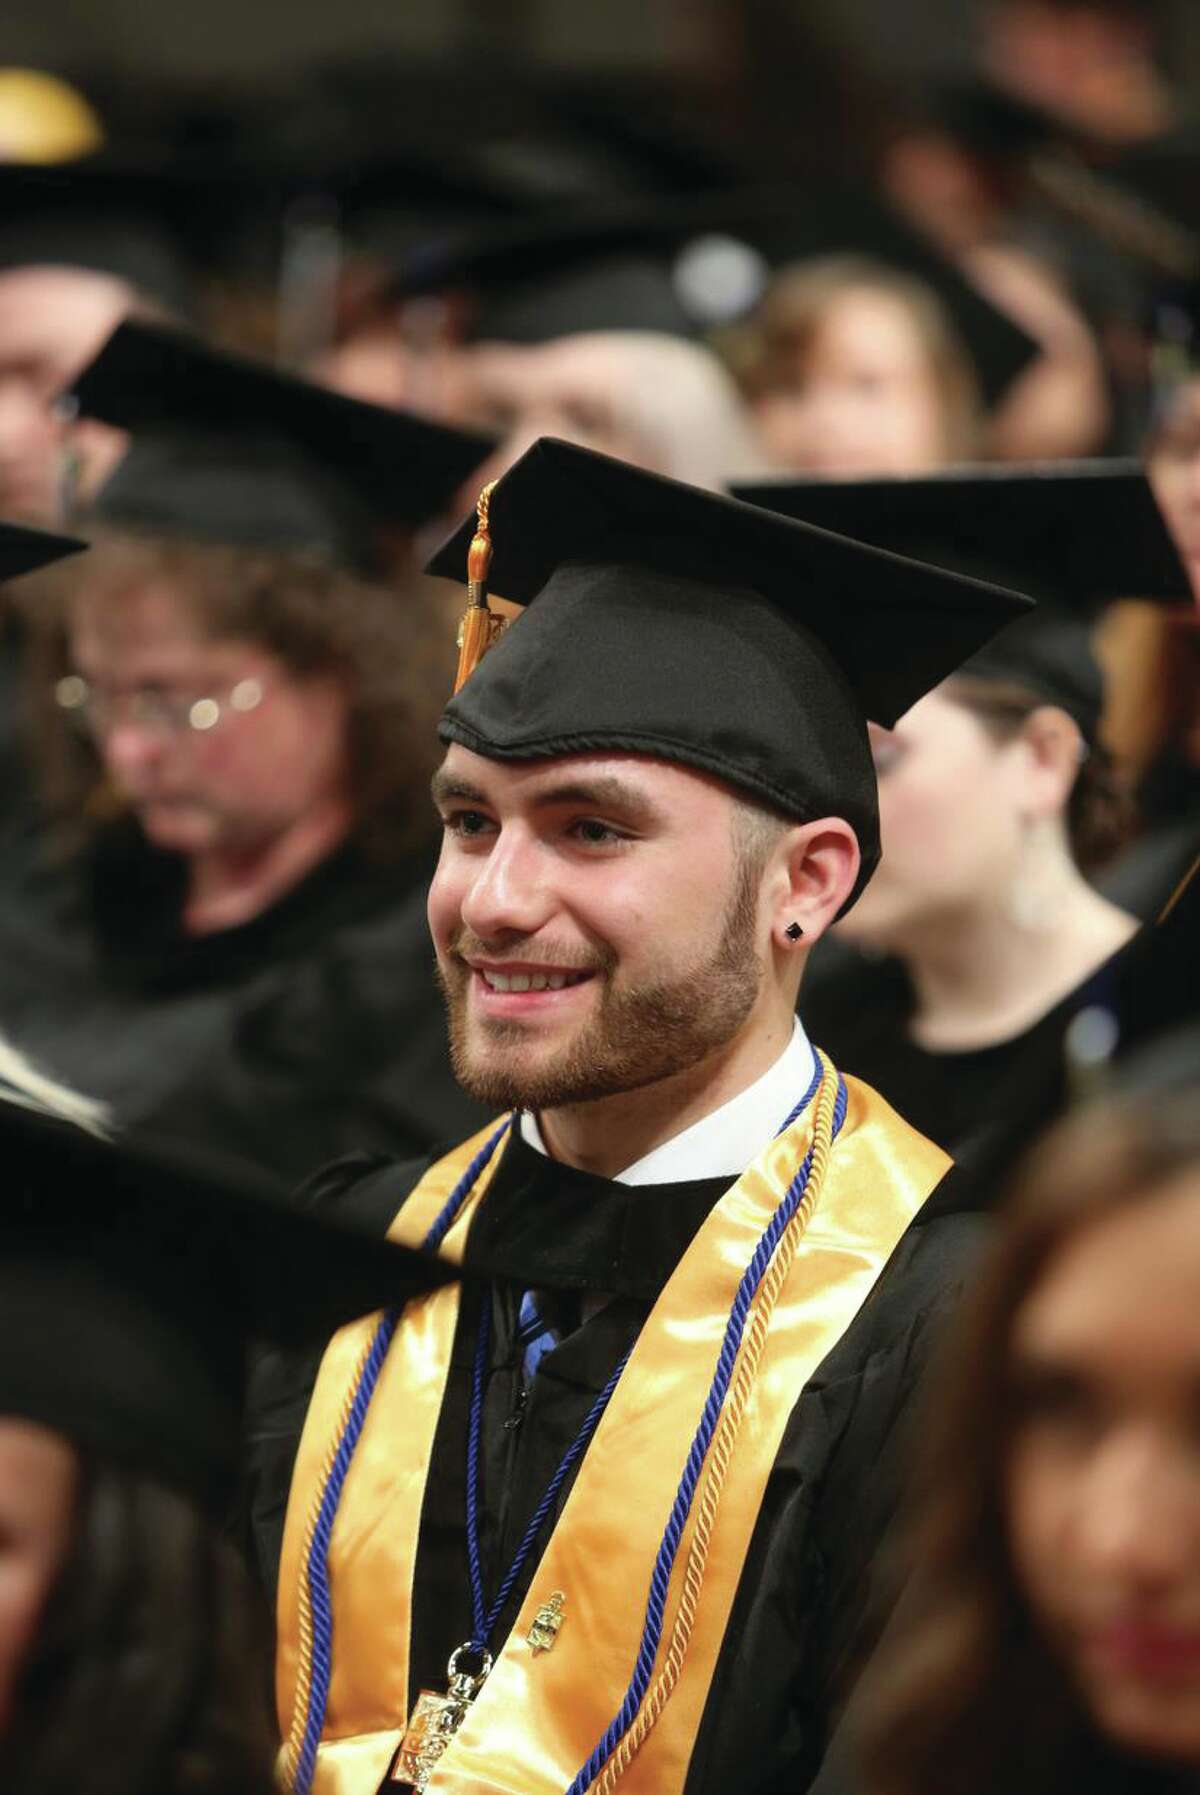 One of the more than 200 graduates of Maria College during he 54th Maria College Commencement on May 15 in the Empire State Plaza Convention Center in Albany, NY. (Maria College photo)